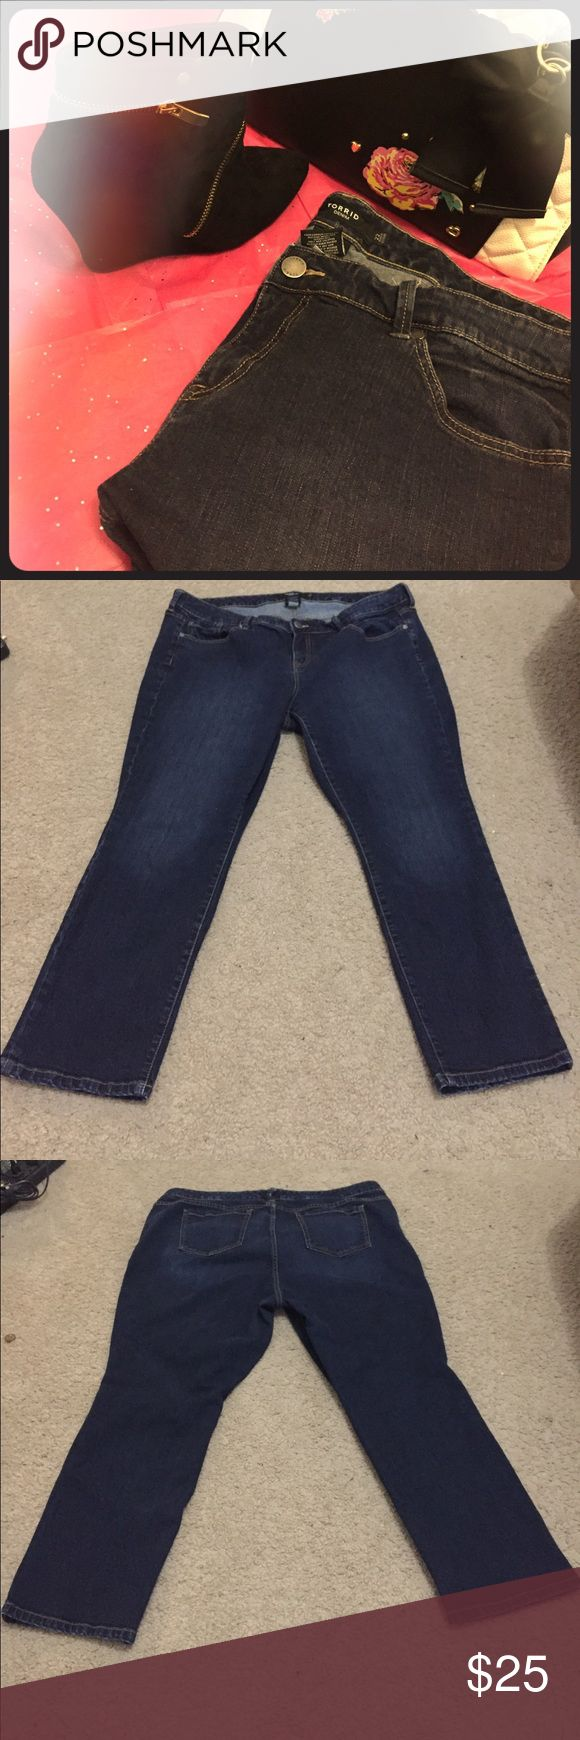 🔥Size 22 Torrid Skinny Jeans🔥 These are a pair of wardrobe essential skinny jeans by Torrid. Simple, dark rinse with some decorative fading make these jeans sure to work with all your outfits all year round! No rips or stains! Inseam: about 27.5 in. I included a close up of the leg opening so y'all could see that they are skinnies! Betsey Johnson bag and booties in covershot also for sale!! torrid Jeans Skinny